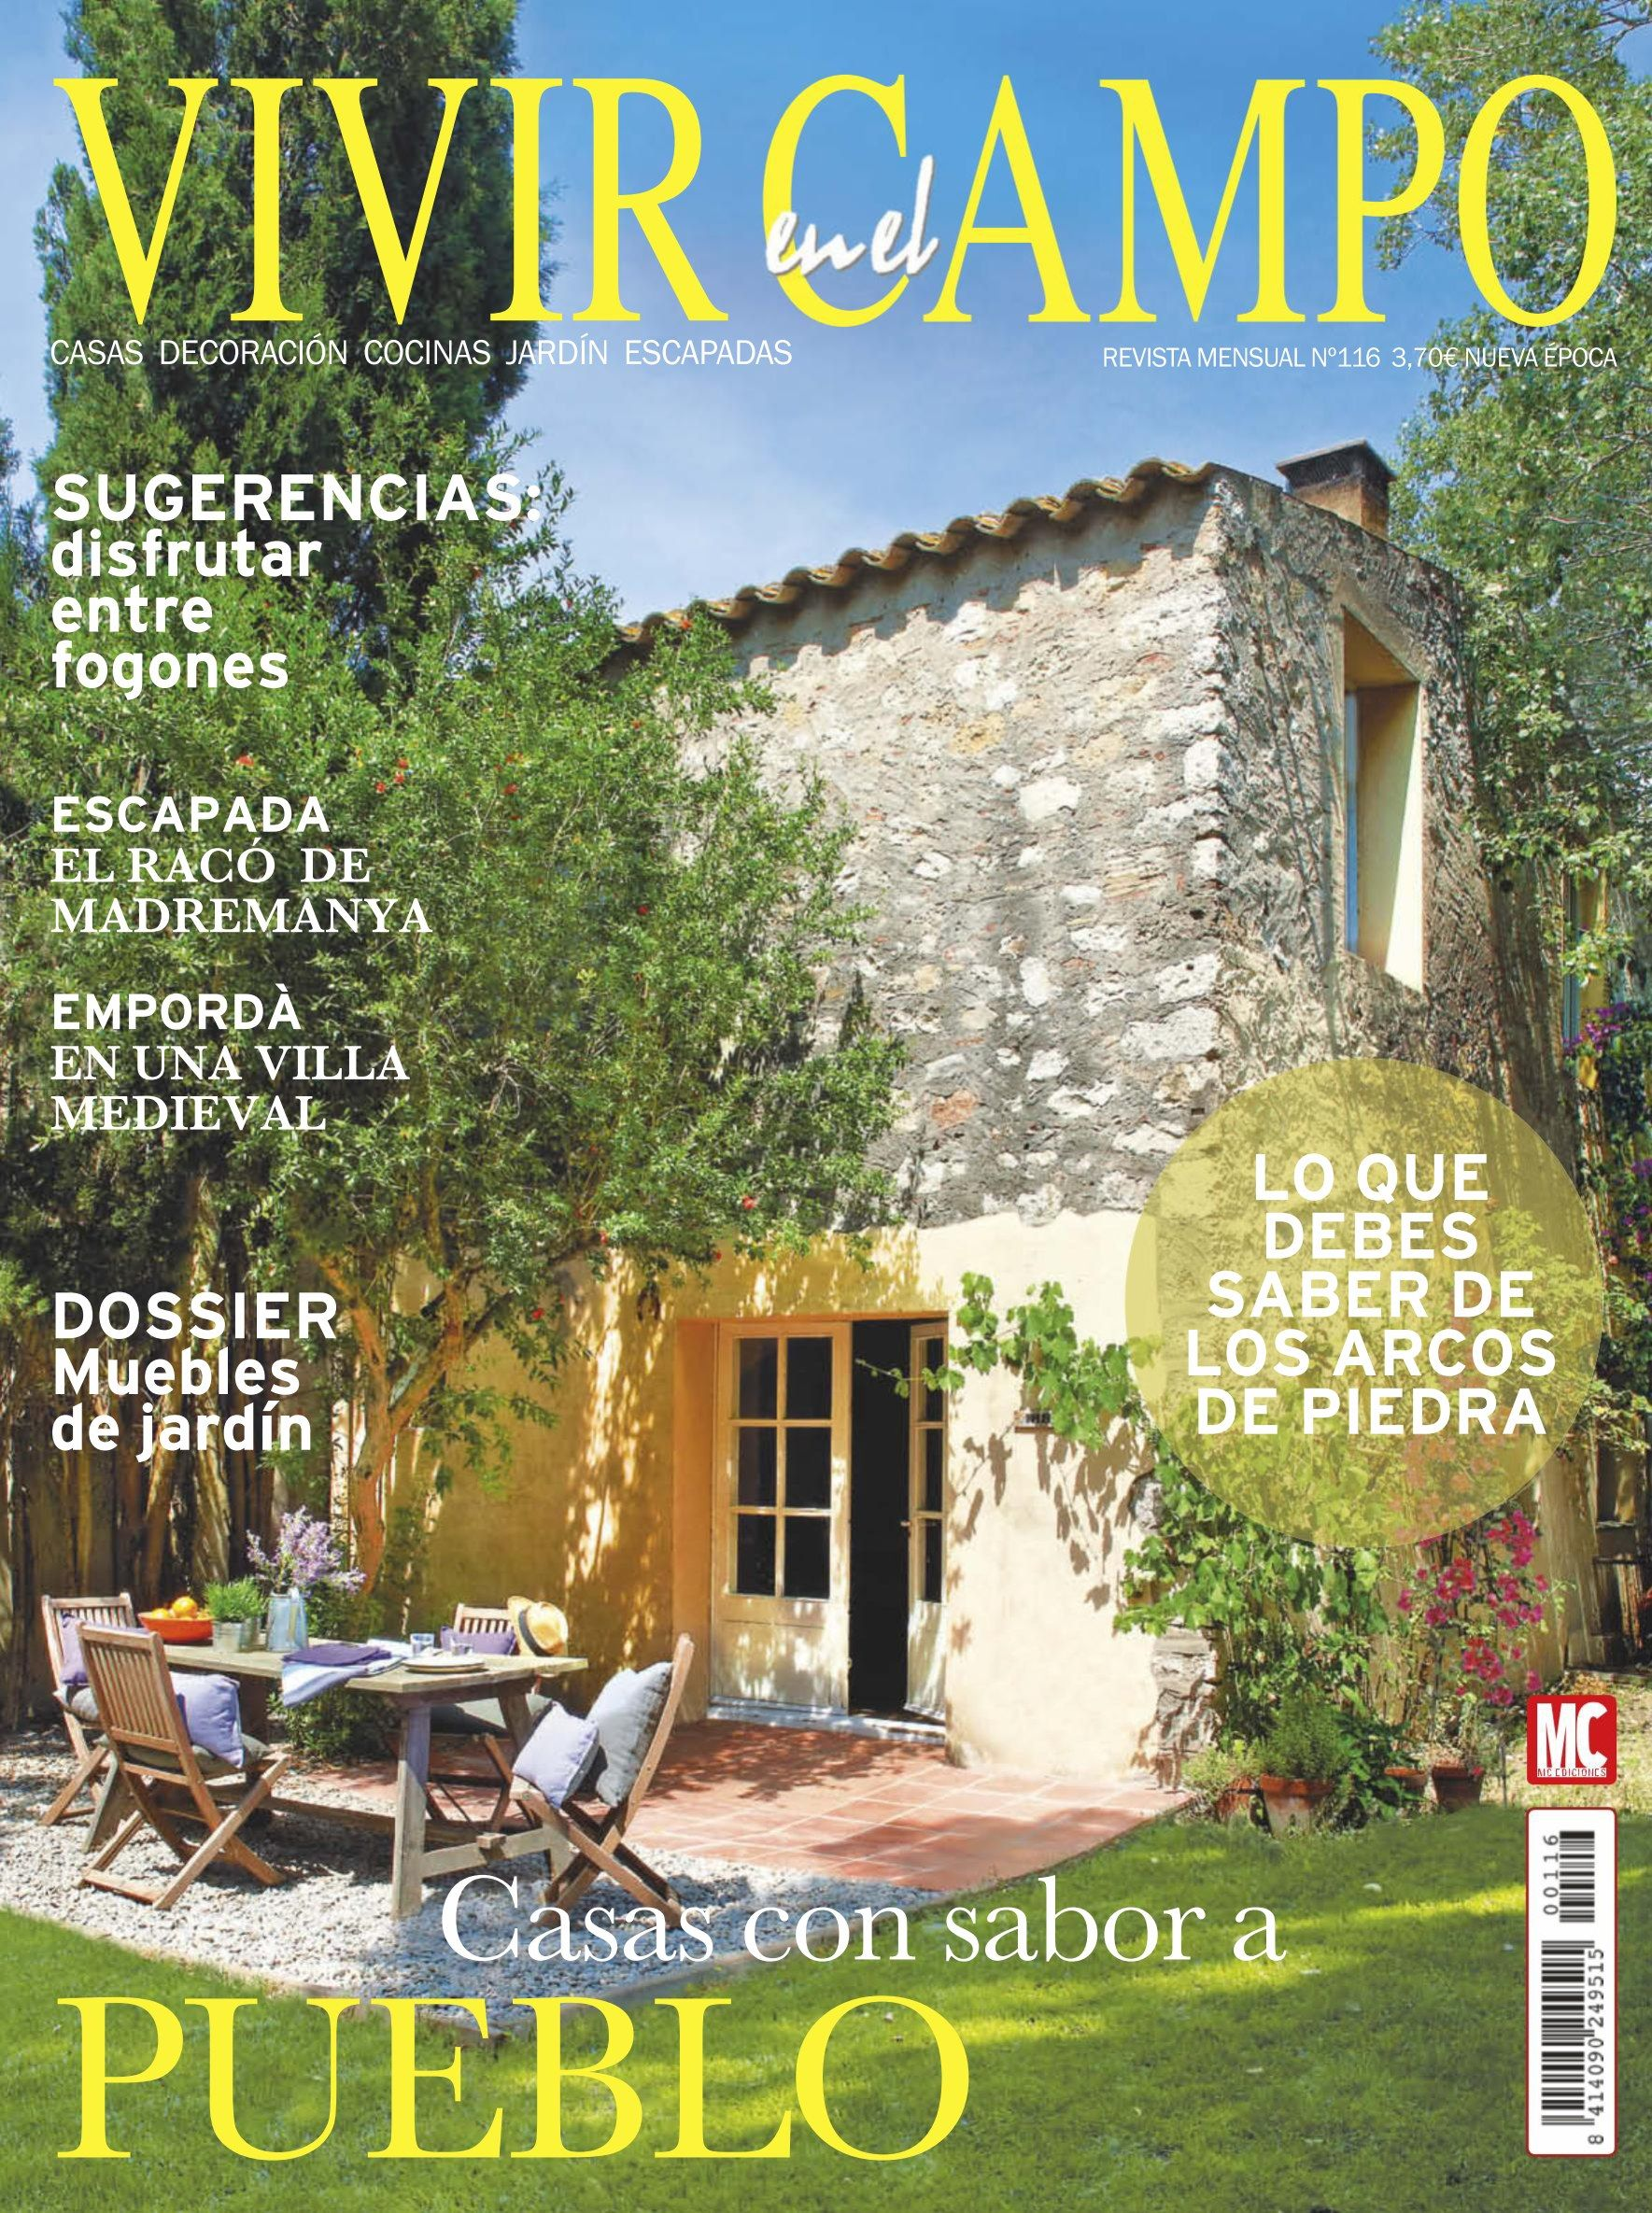 Casa y jardin revista decoracion amazing ideas brutales for Casa y jardin revista pdf